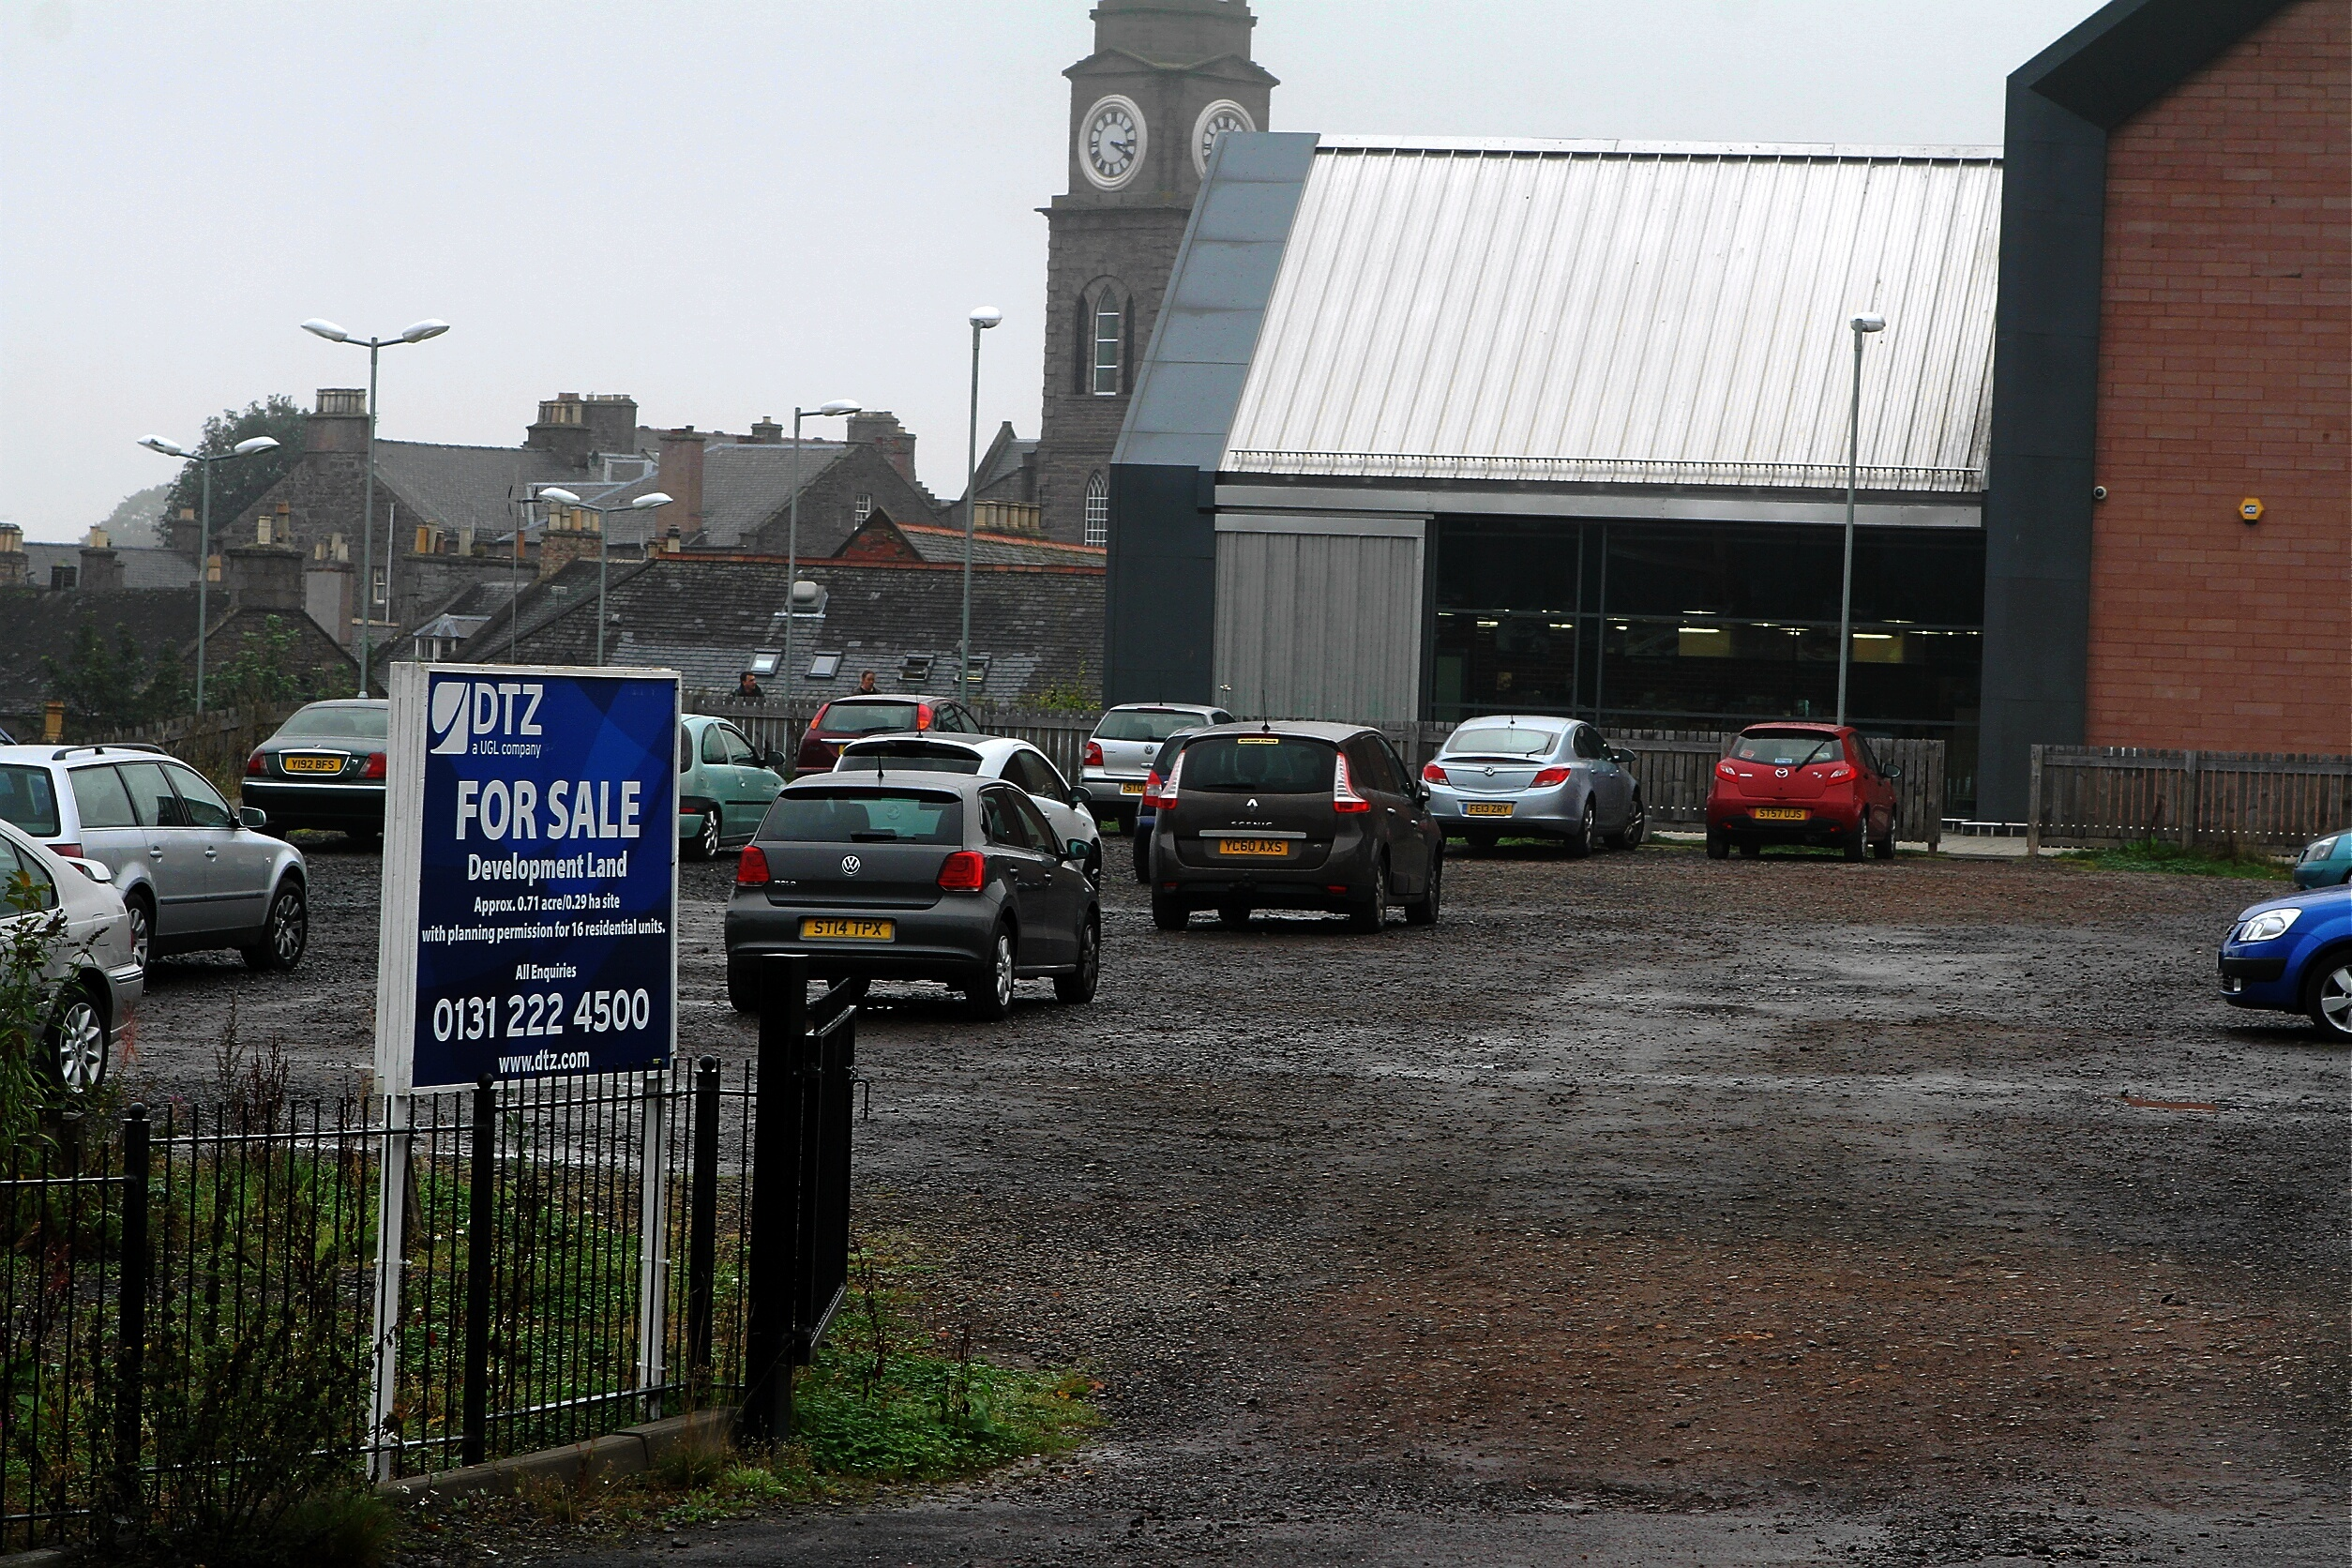 Plans have been lodged for affordable homes on the site.